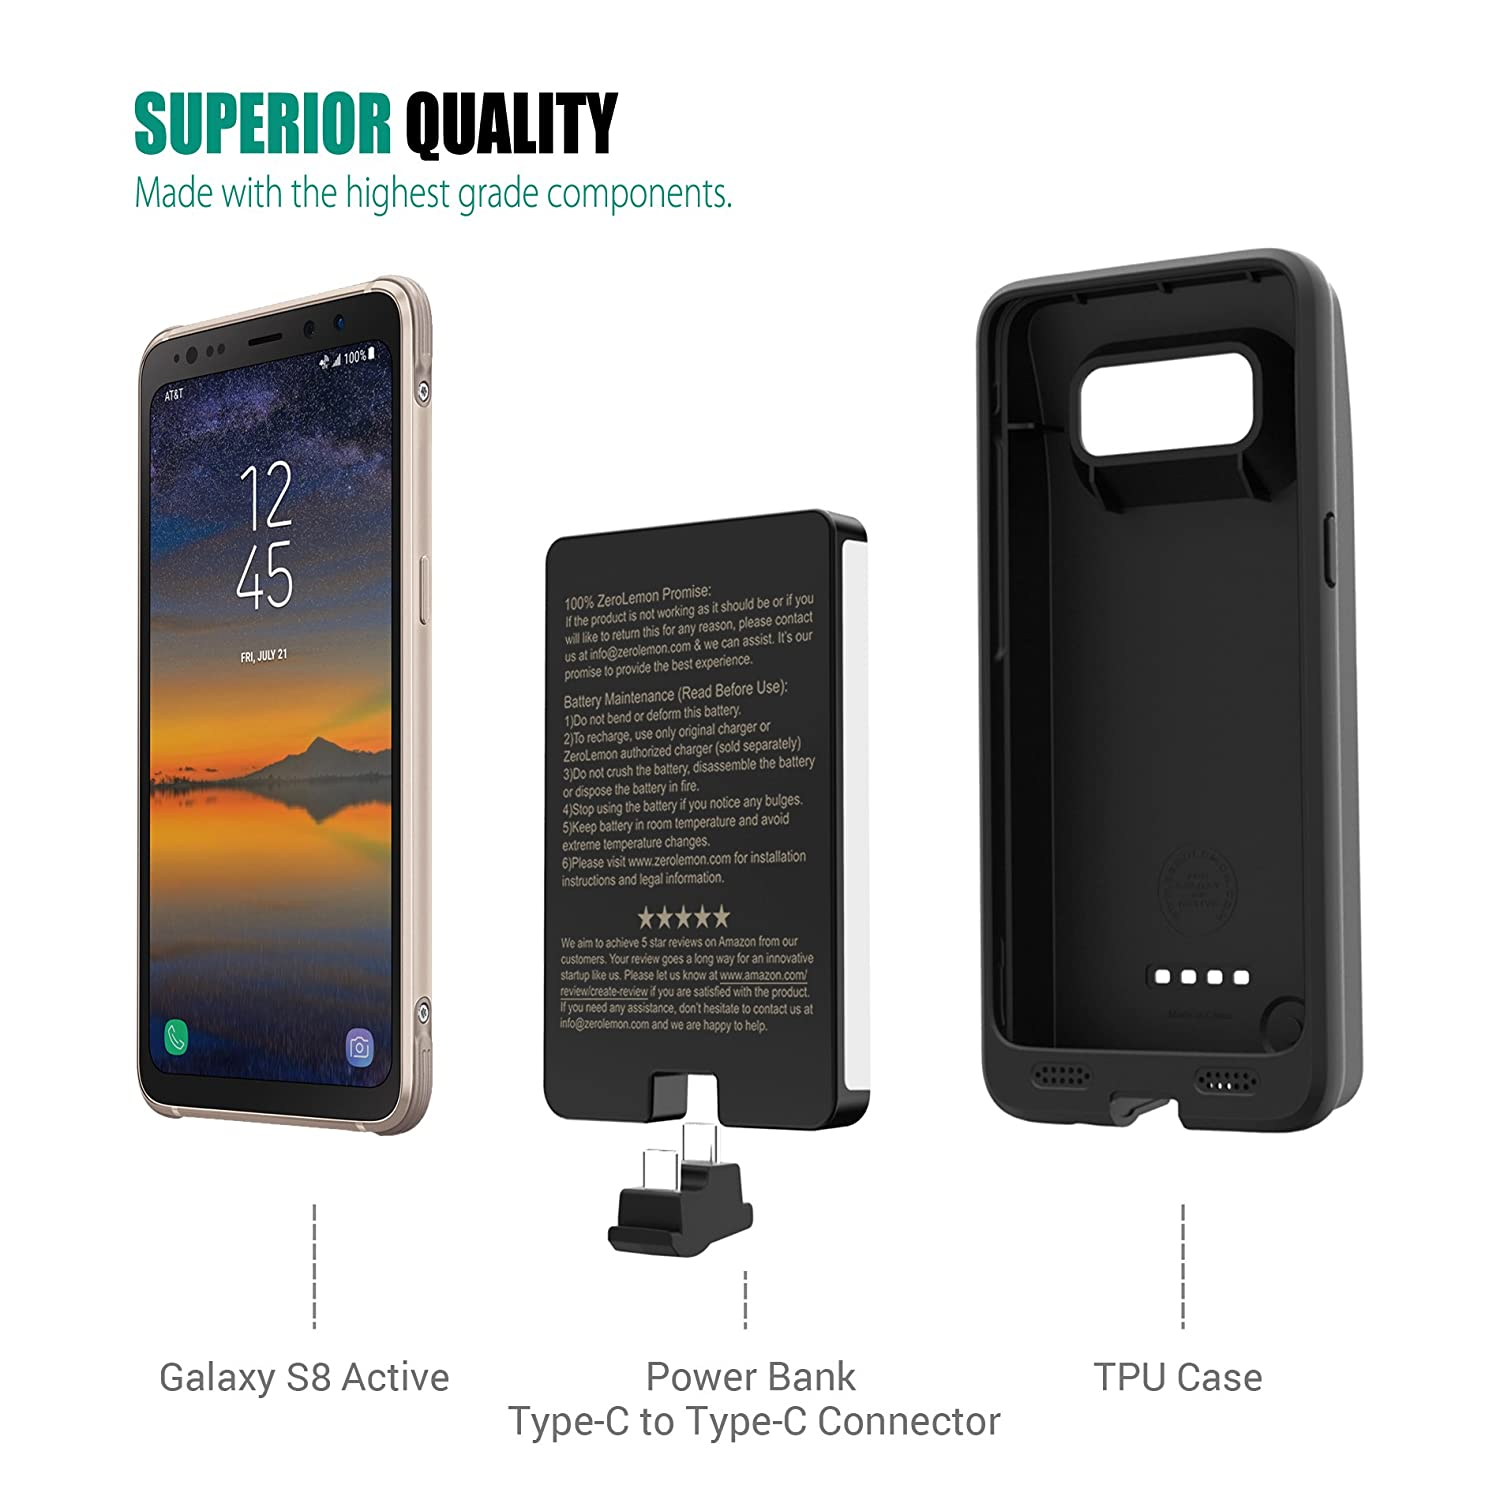 timeless design 0a7c1 a4af6 Mua sản phẩm Samsung Galaxy S8 Active Battery Case, ZeroLemon Ultra ...